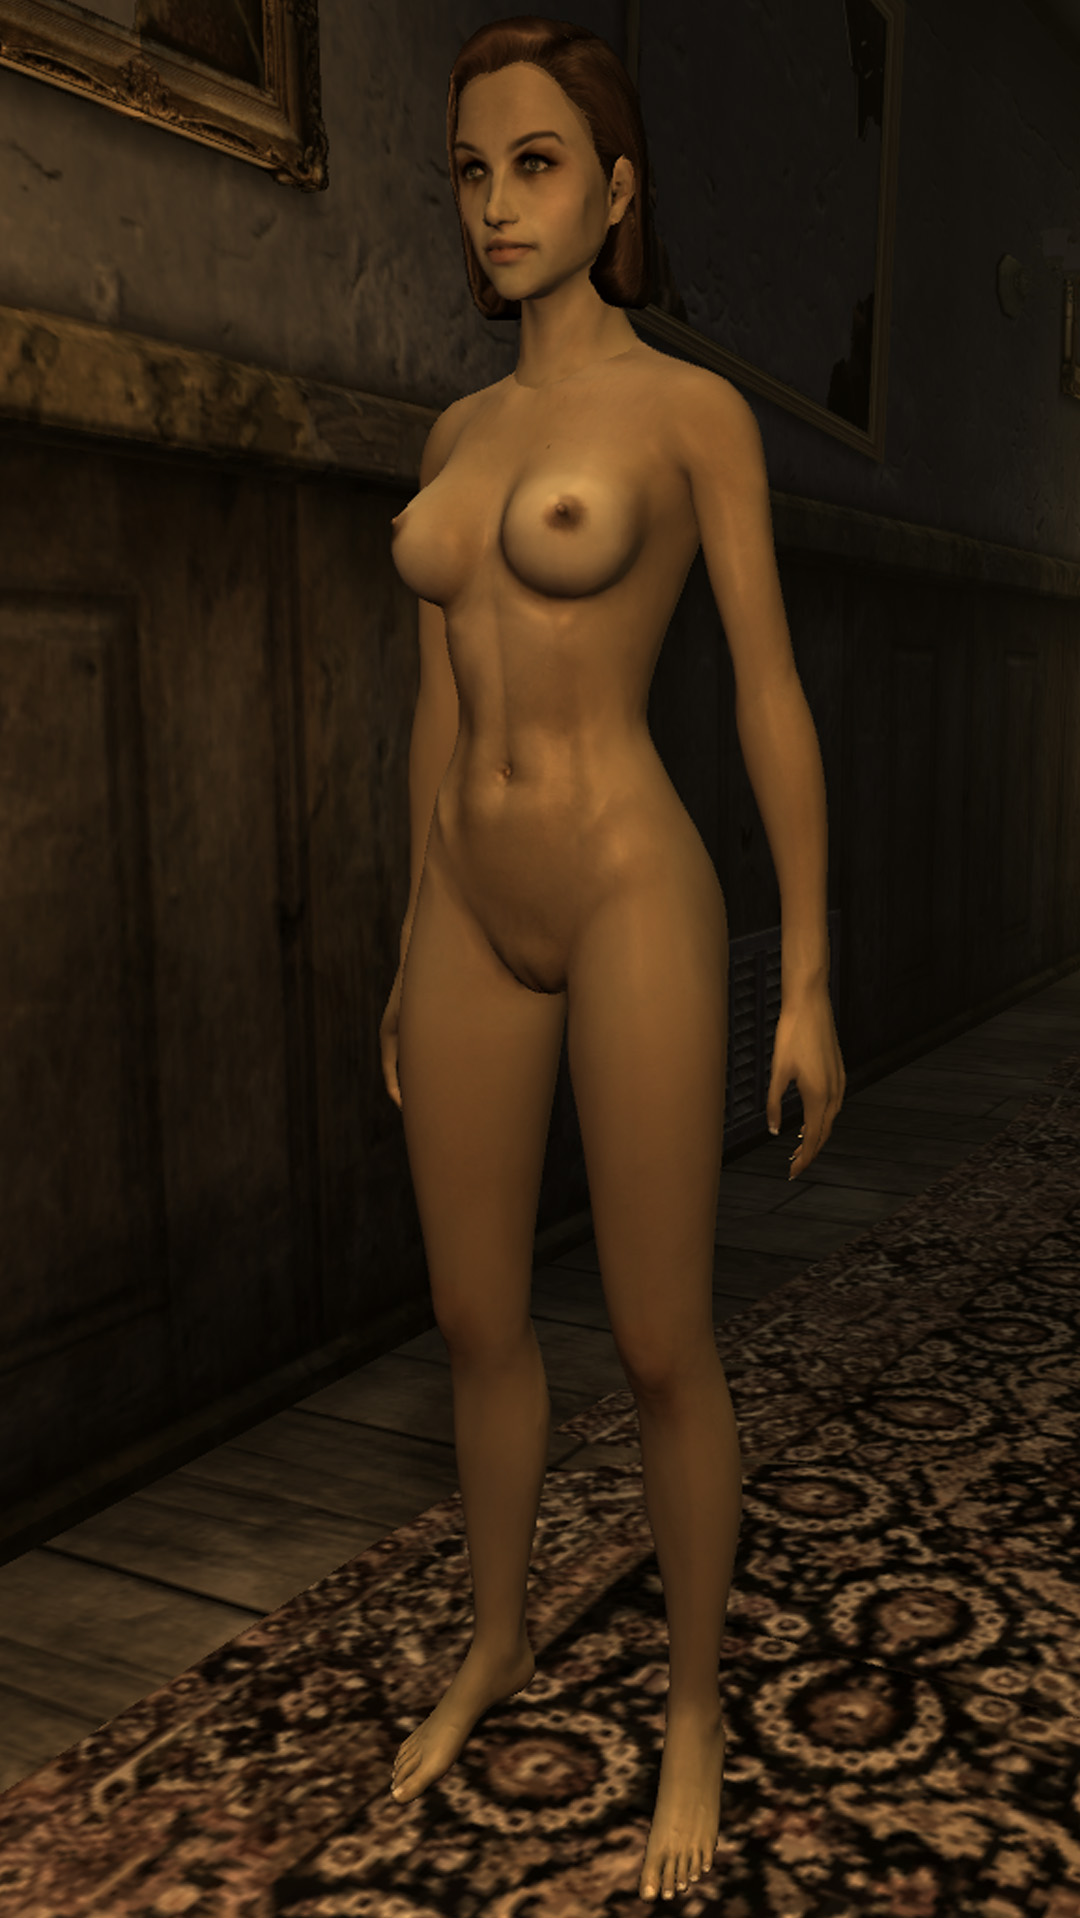 Fallout 3 girl killing and naked nackt scene